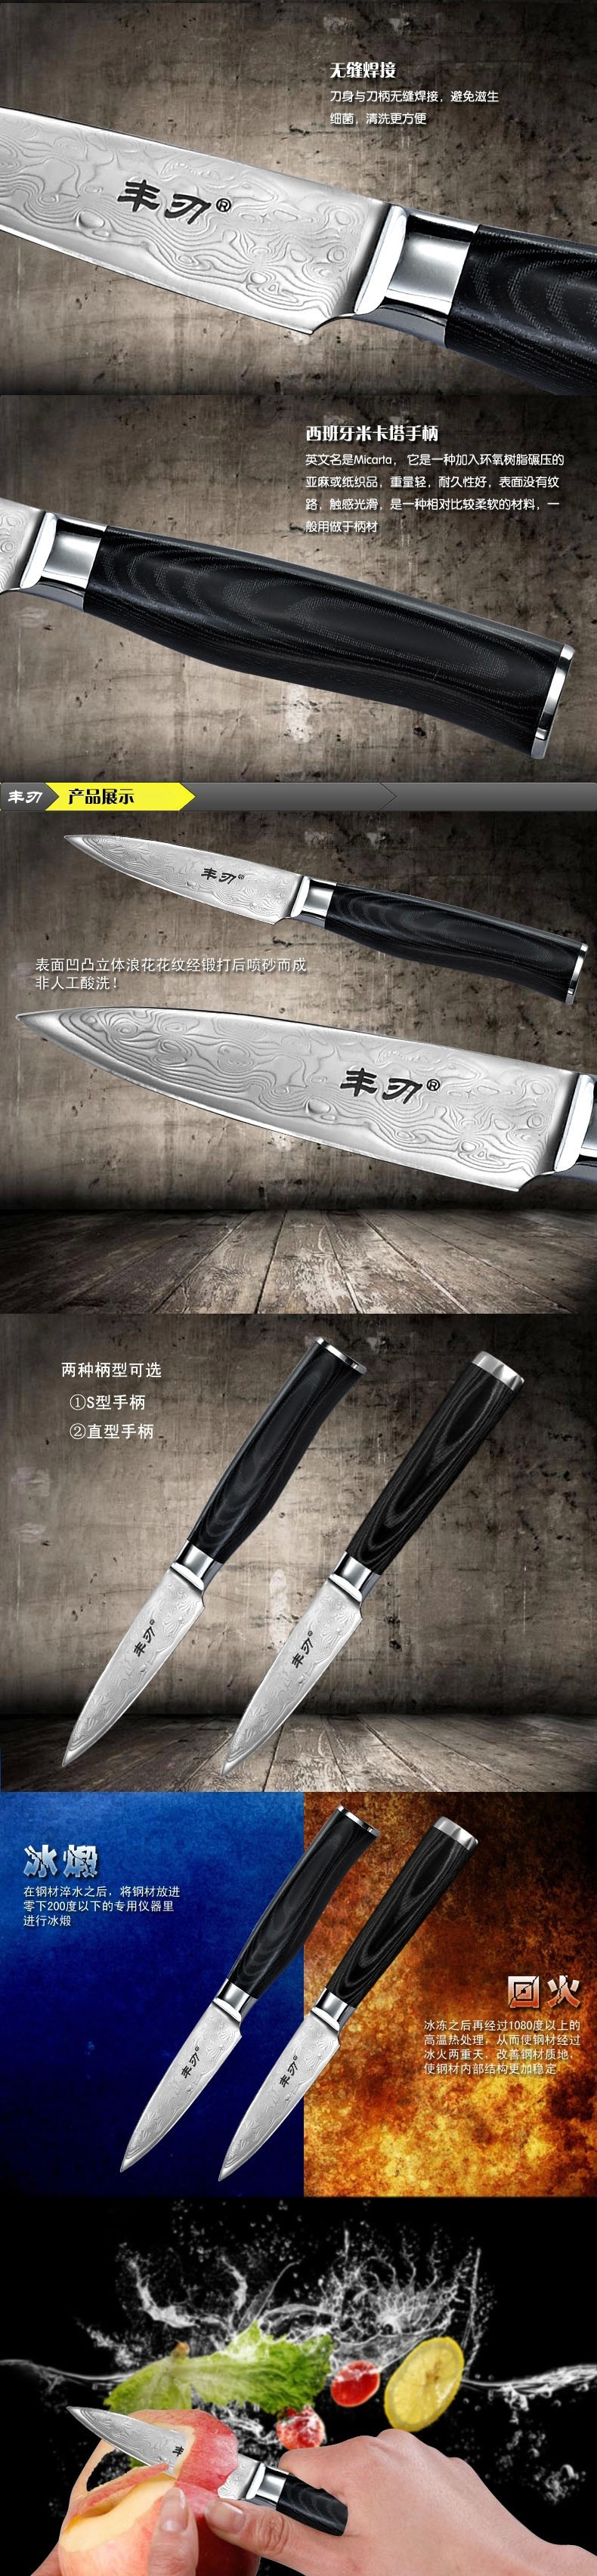 Buy cooking tools,knife kitchen,damascus knives,chef knife,kitchen tools,You can cut fish,steak,sushi,Meat/sliced/cut fish/vegetable cheap